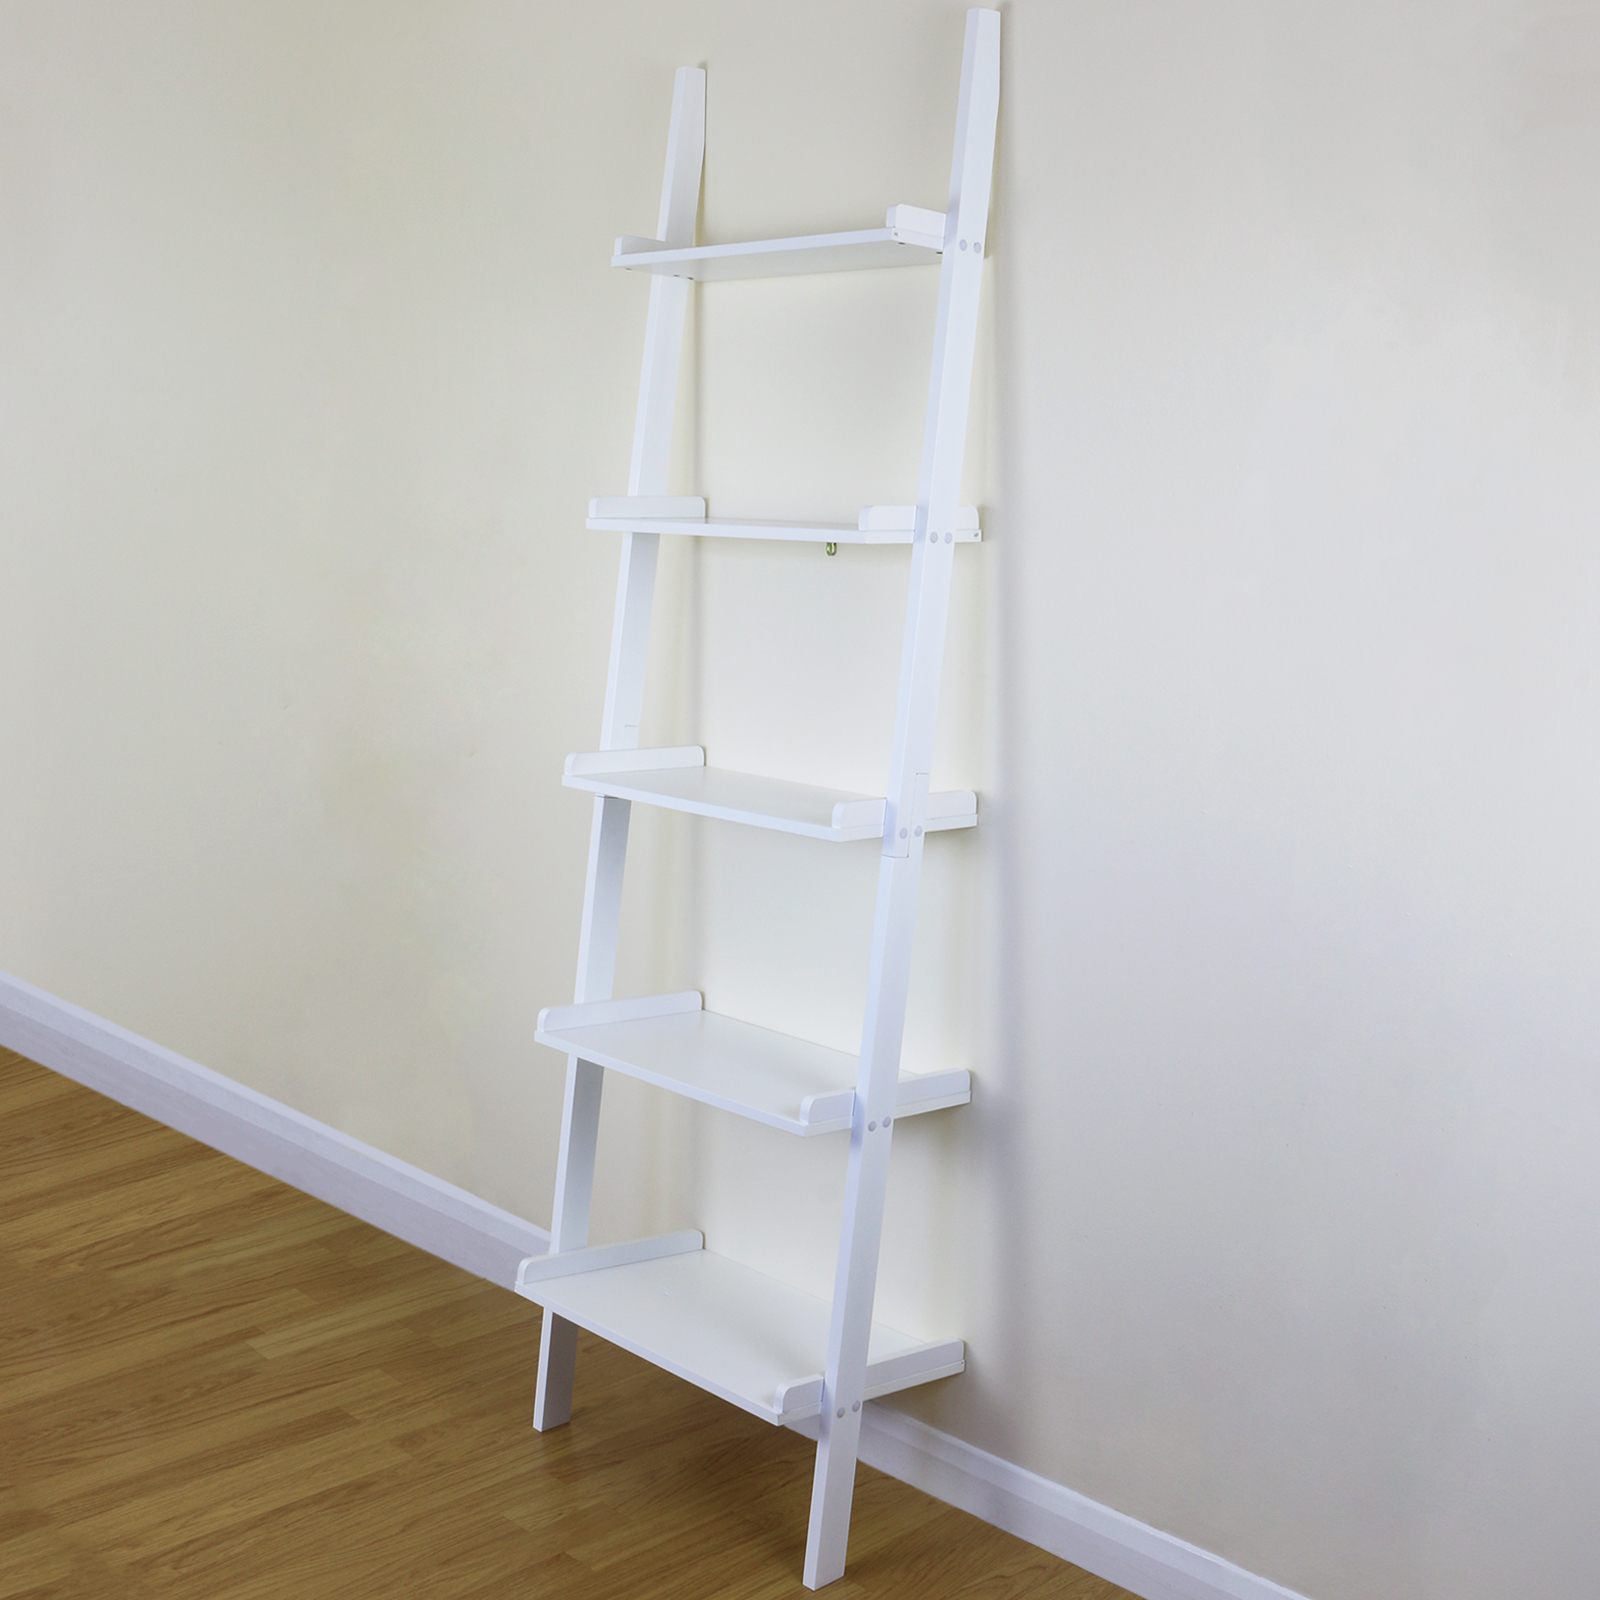 5 Tier White Ladder Wall Shelf Home Storage Display Unit Bookcase Stand Bathroom